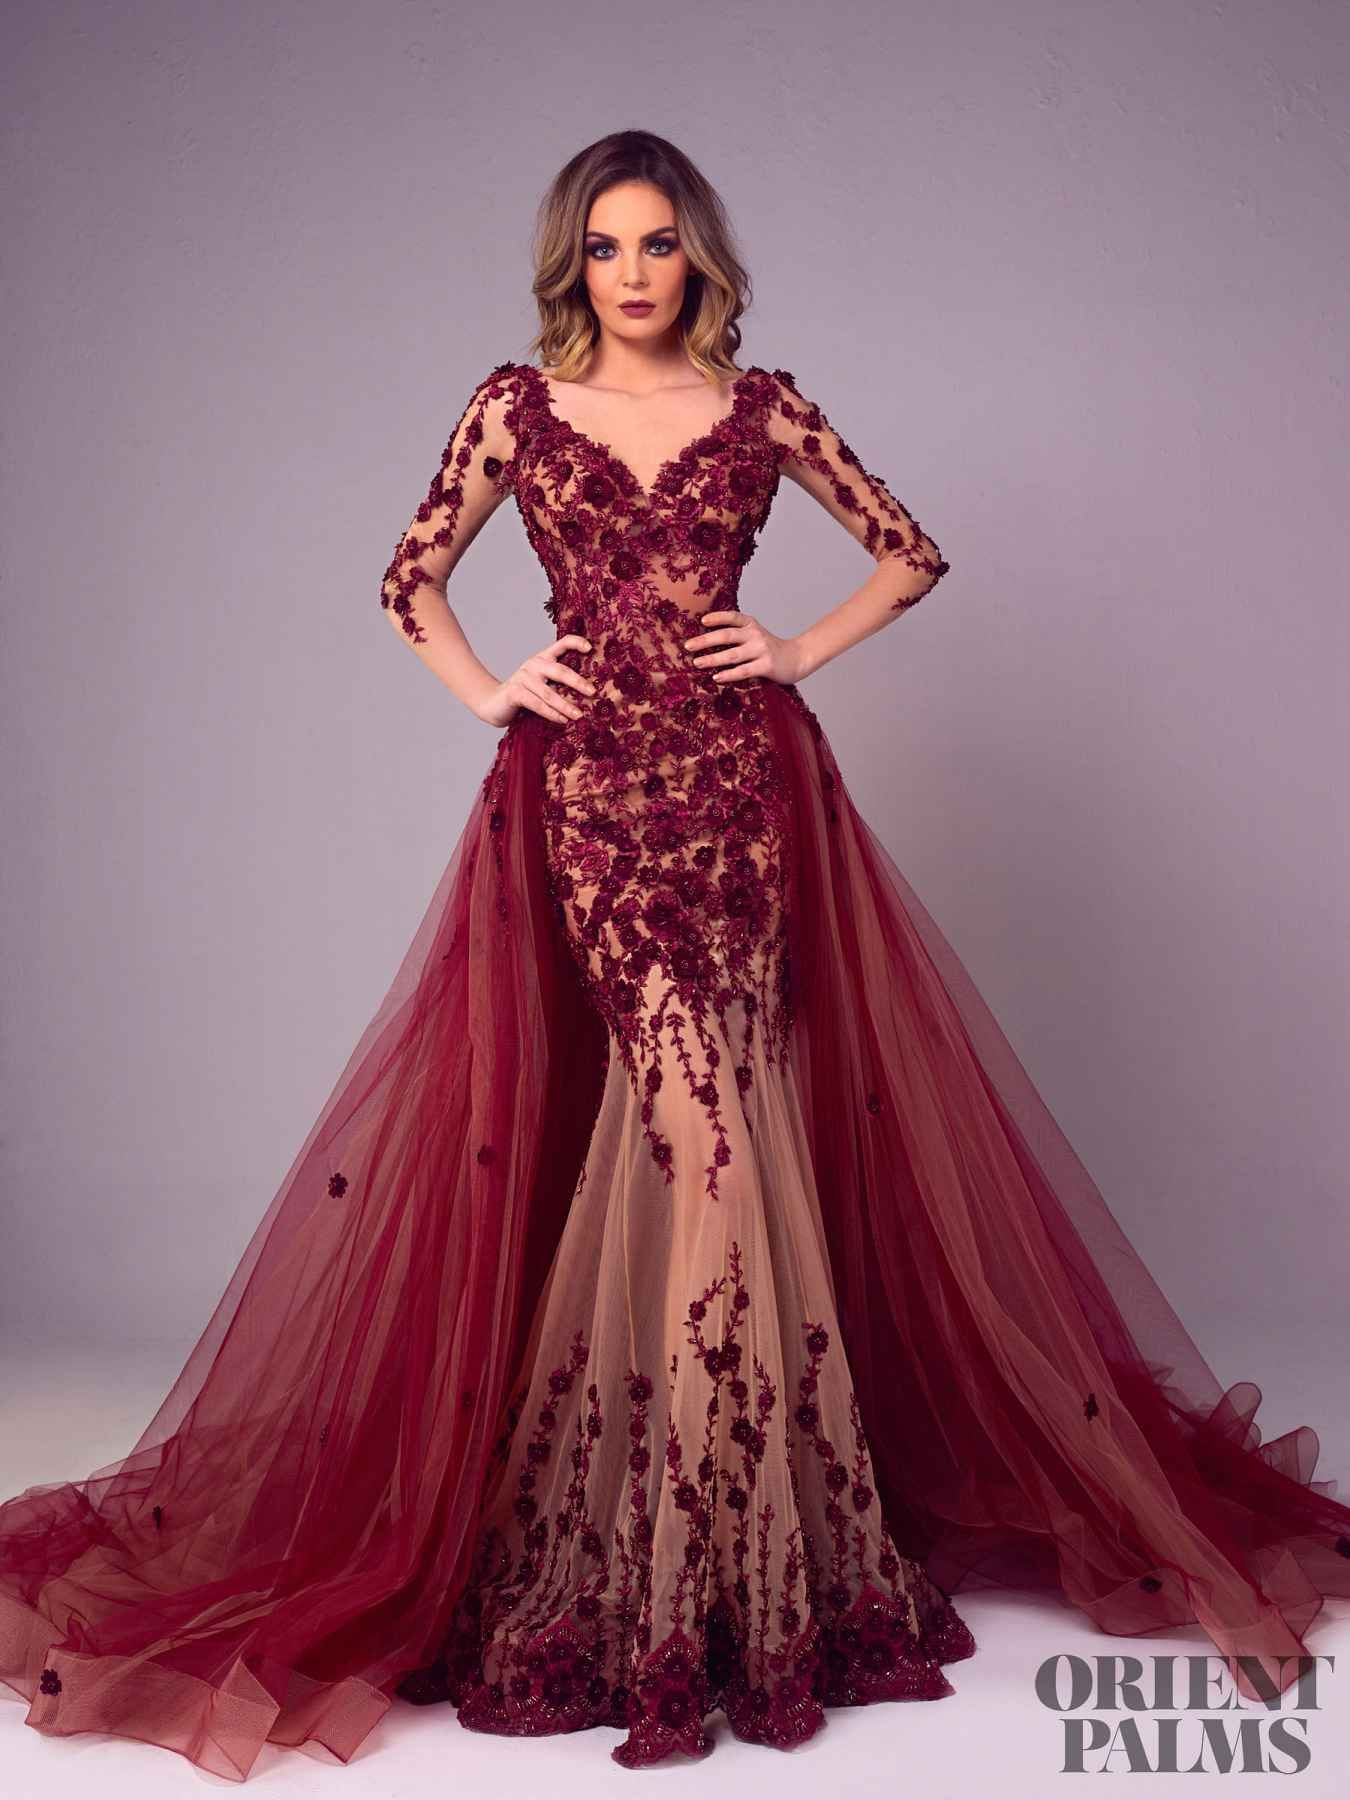 1a2d6a3ca3c0 Tony Chaaya 2018 collection - Couture in 2019 | Ladies | Fashion ...